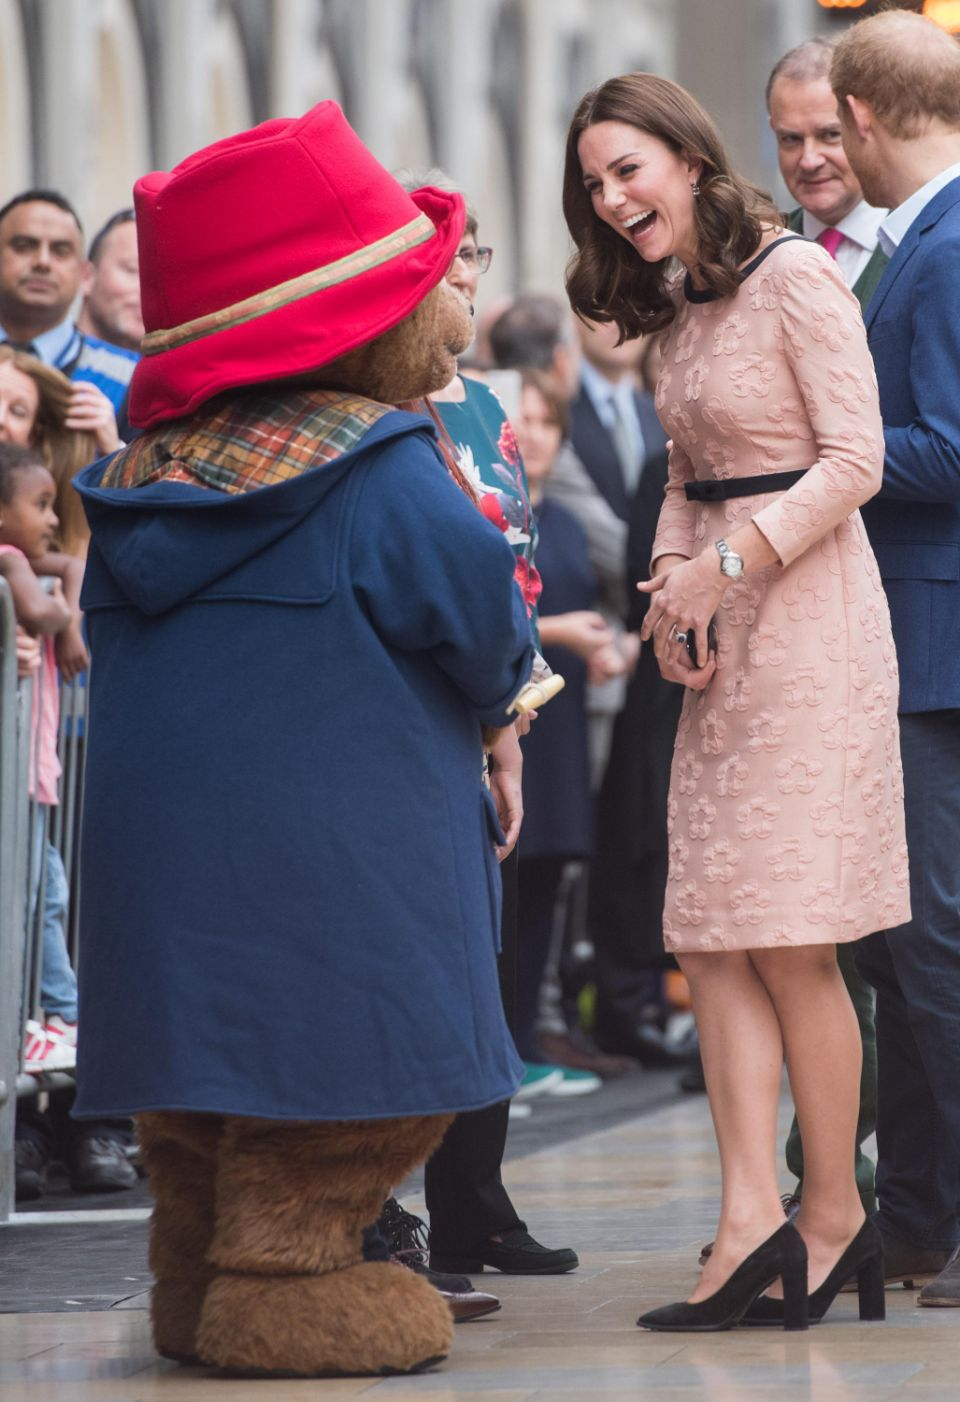 The Duchess of Cambridge made an unexpected visit to Paddington Station on Monday morning, where the news was revealed. Photo: Getty Images